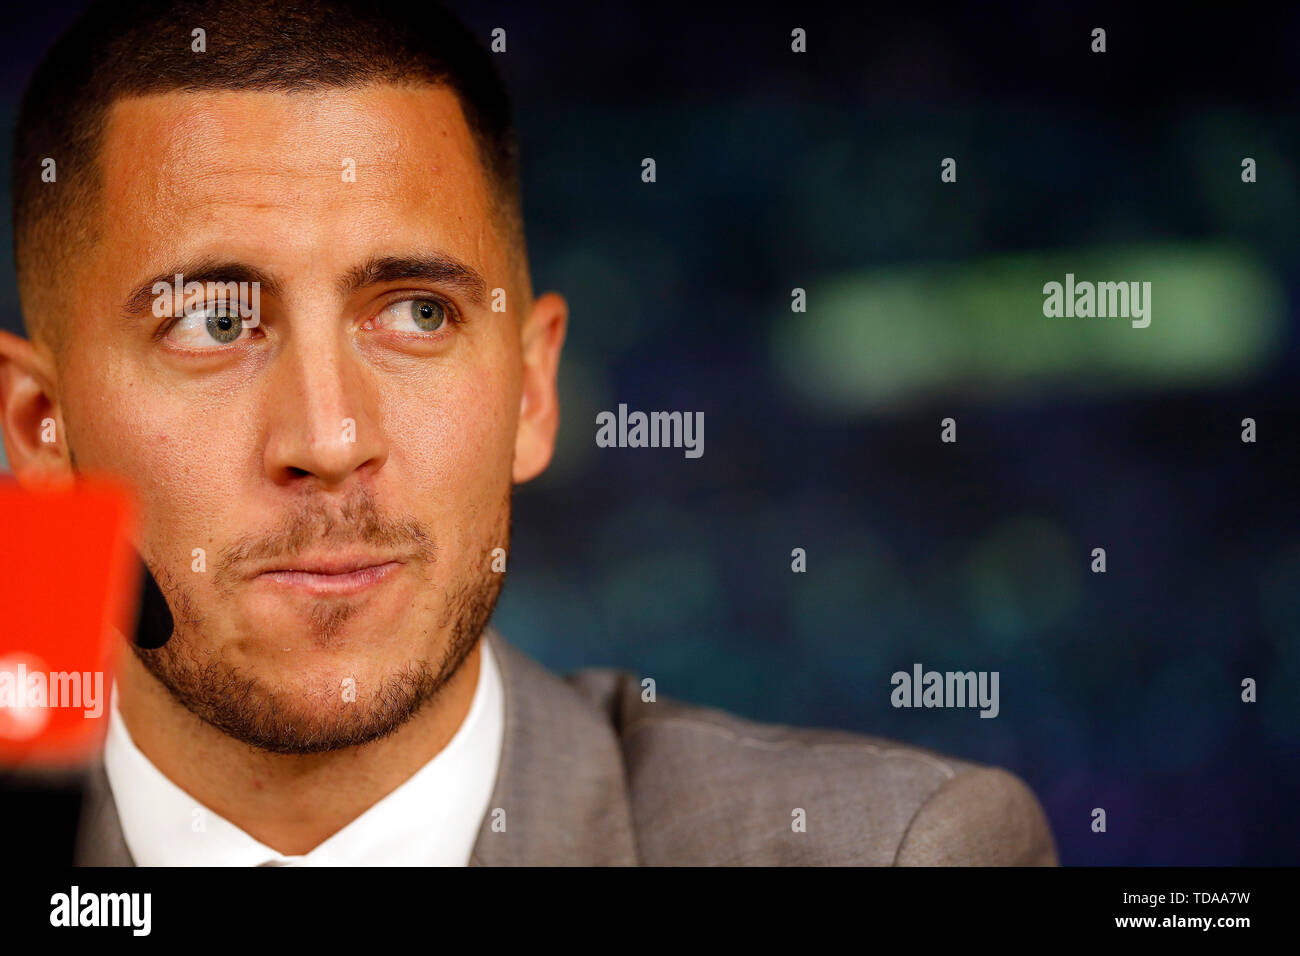 Madrid, Spain. 13th June, 2019. Eden Hazard seen during his presentation as a new player of Real Madrid CF at the Estadio Santiago Bernabeu in Madrid. Credit: SOPA Images Limited/Alamy Live News - Stock Image